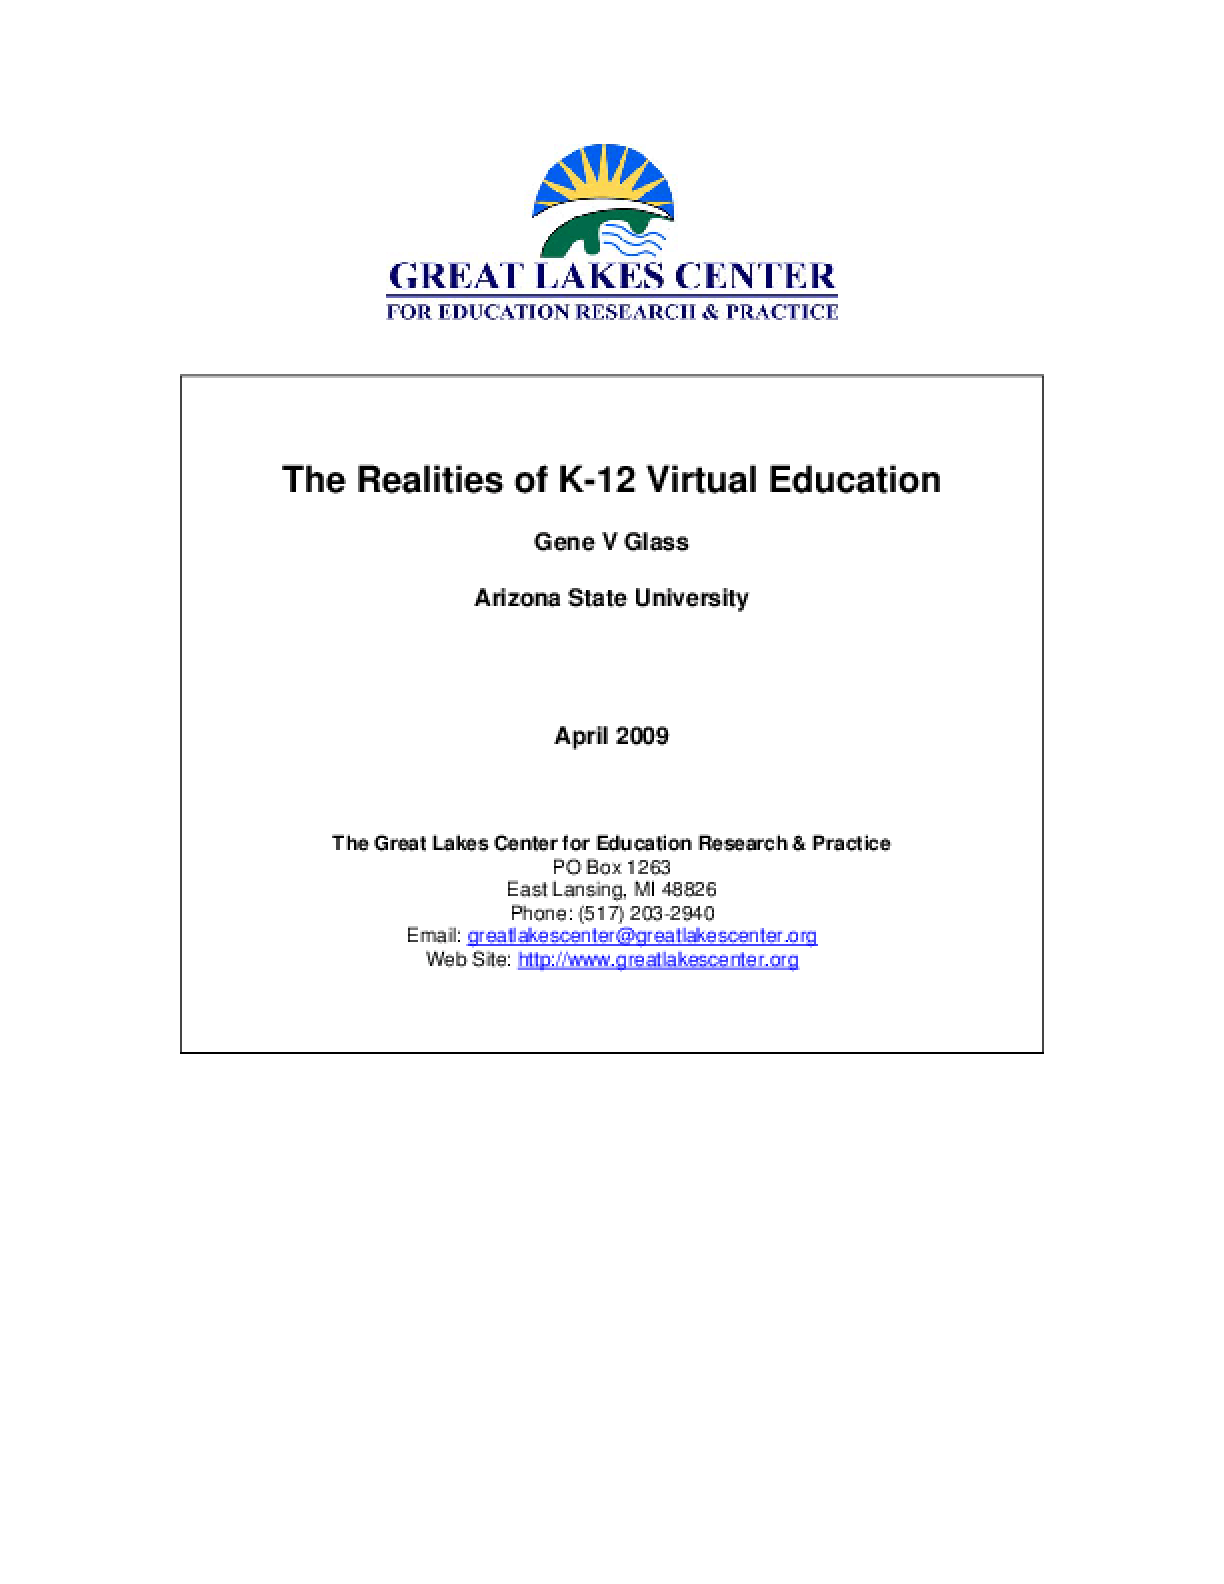 Realities of K-12 Virtual Education, The